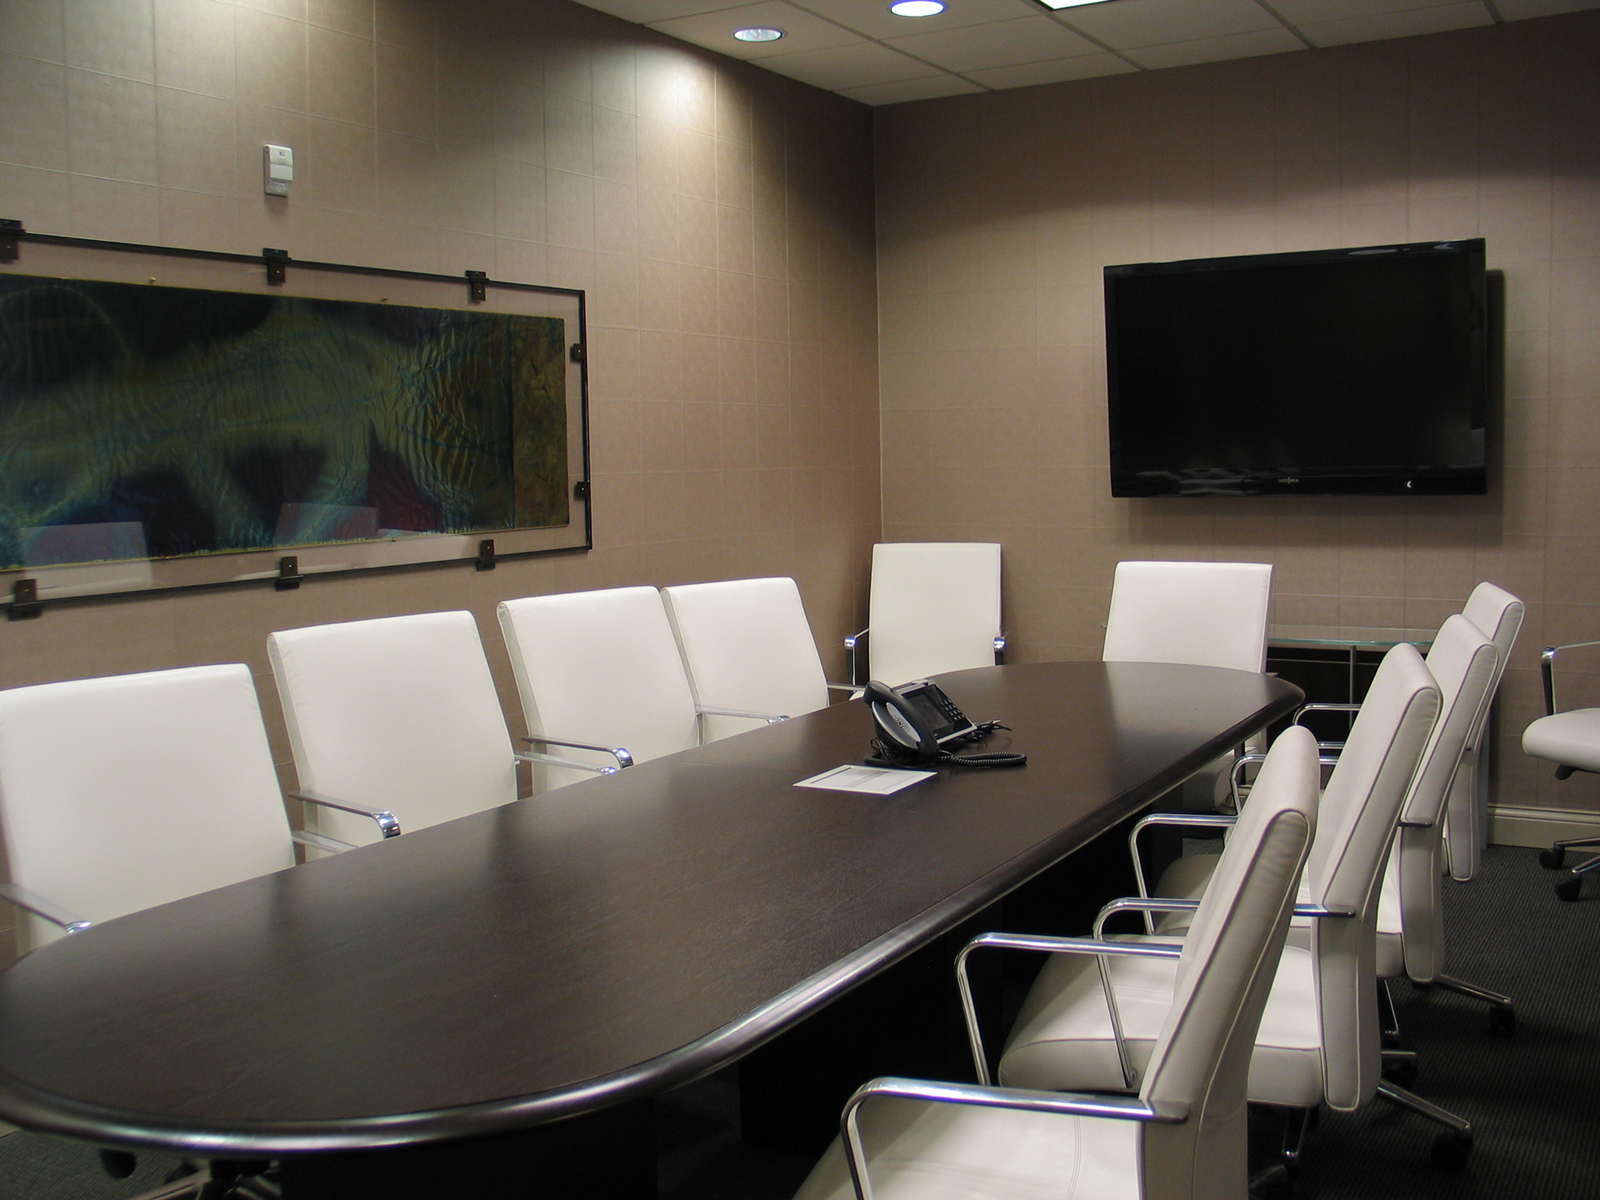 Springstone-Board-Room-2012-03-07-009